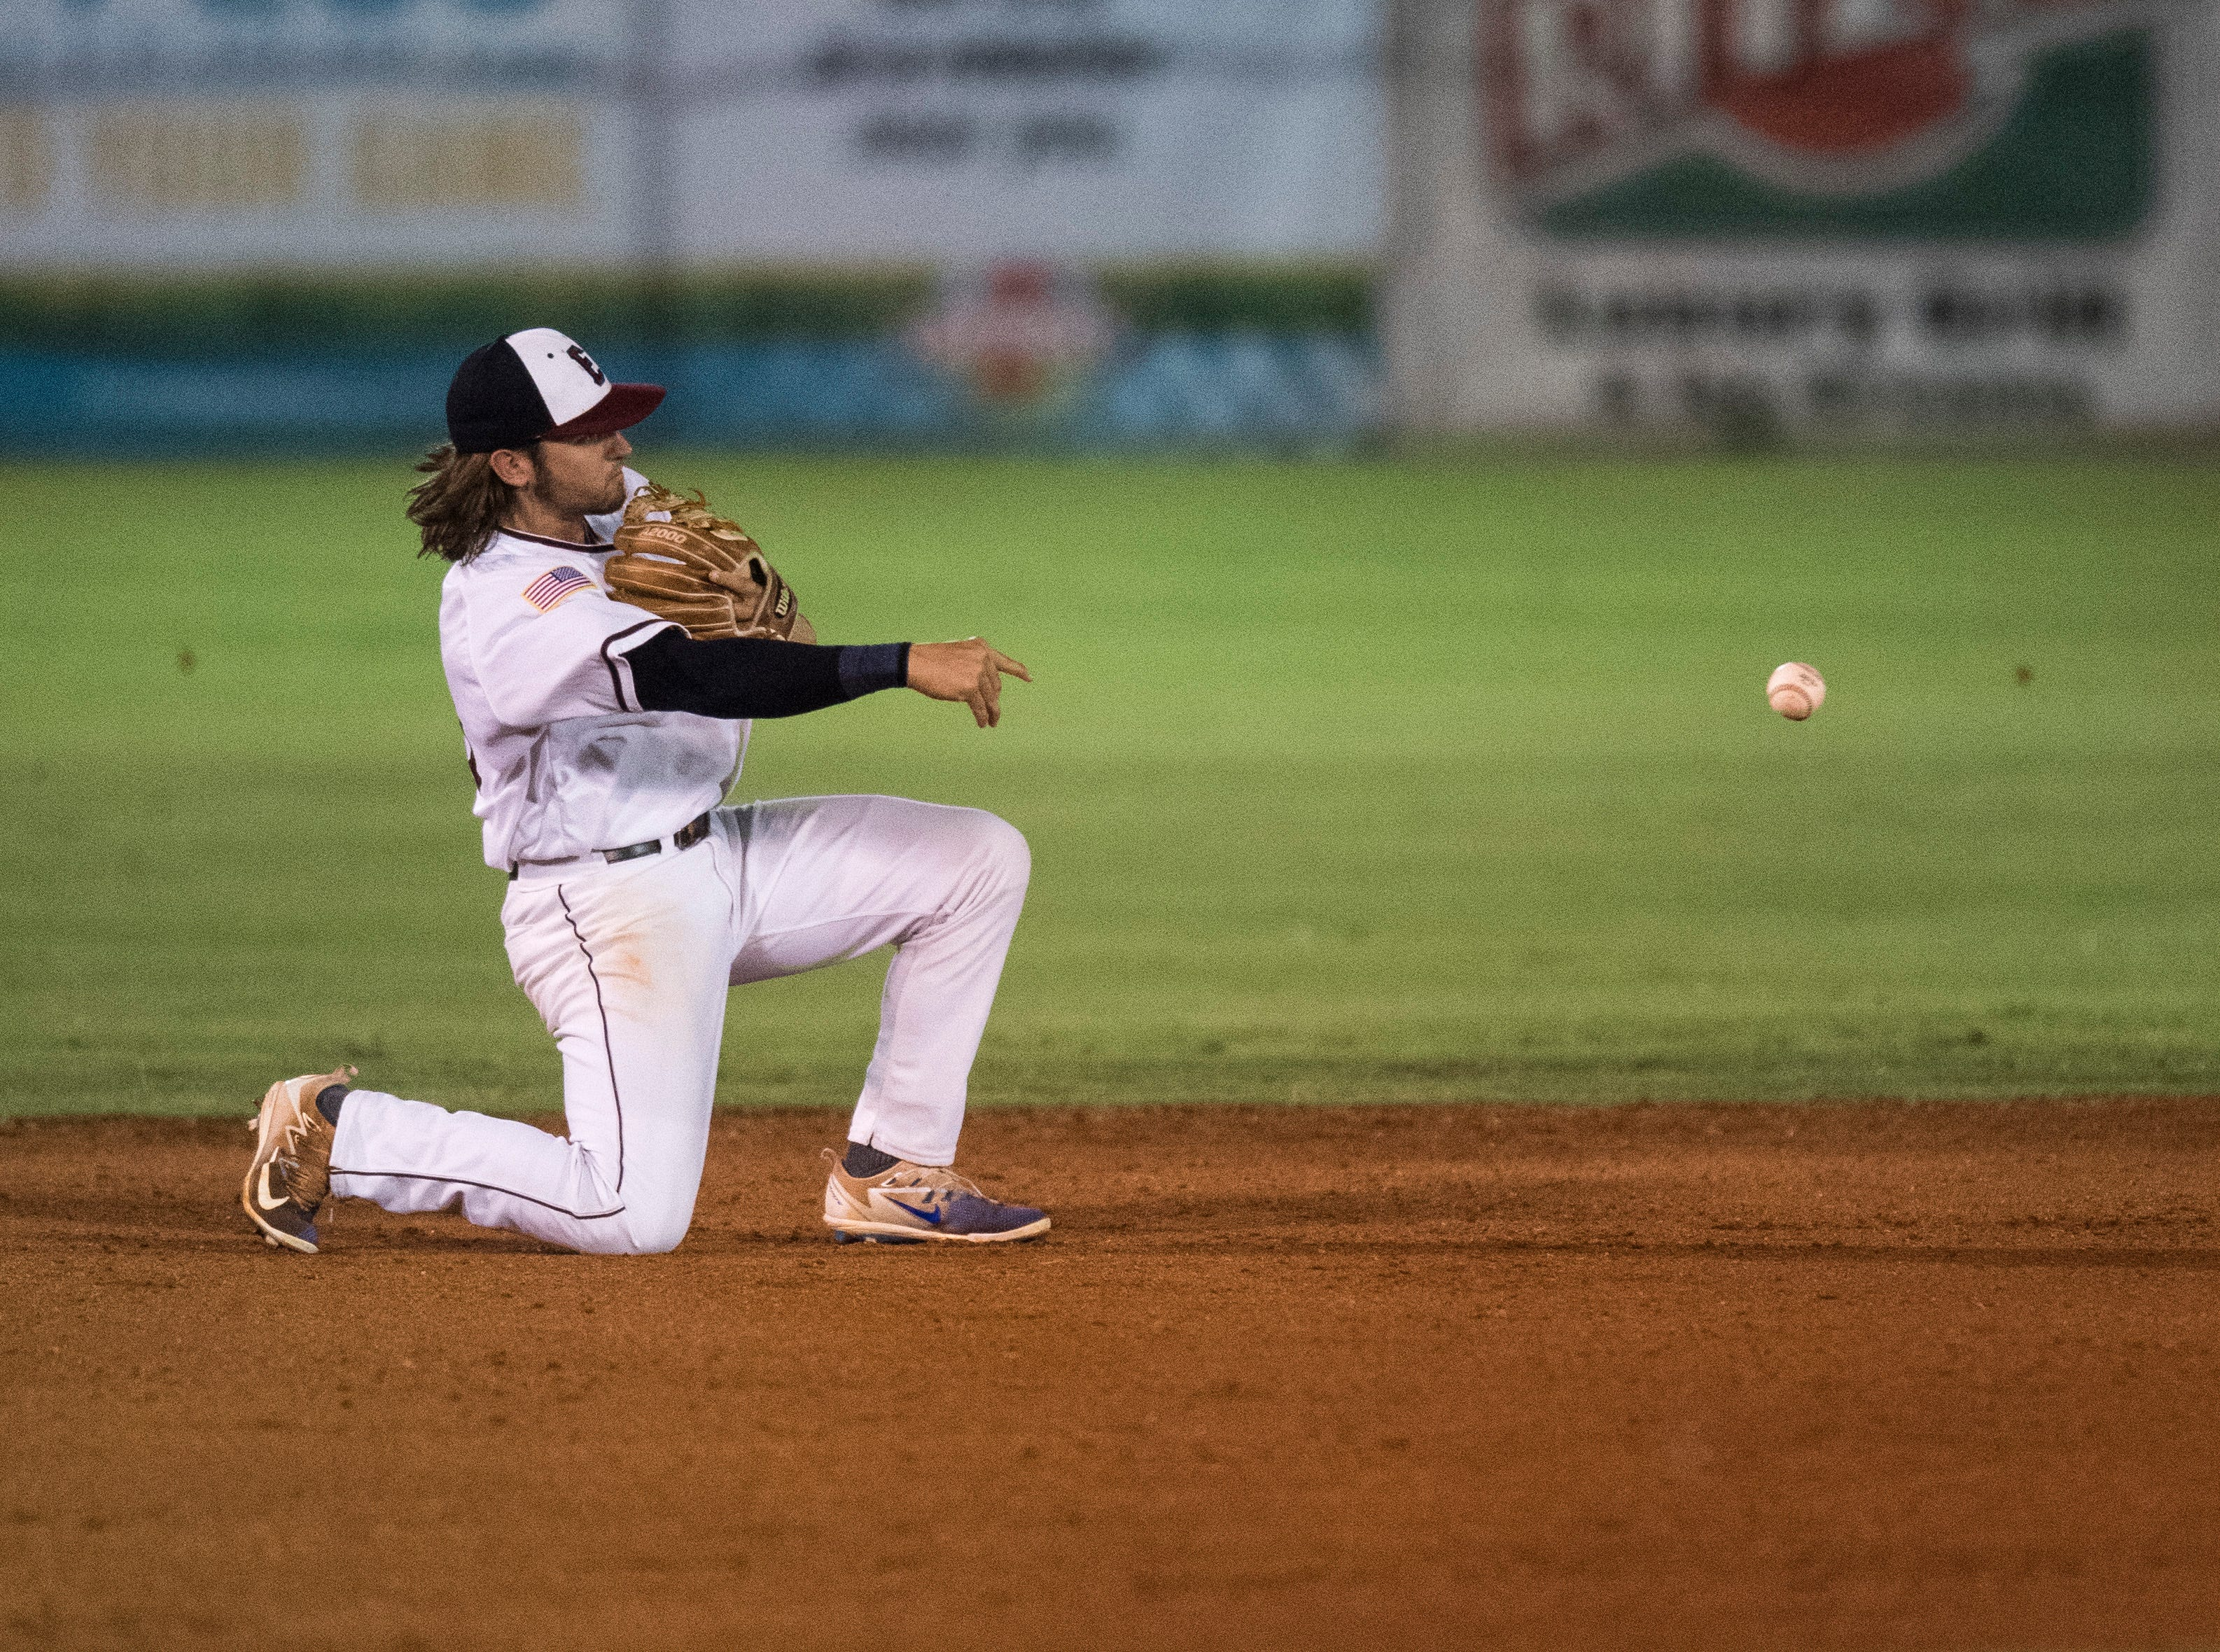 Evansville's J.J. Gould (31) throws the ball to second base during game one of the Frontier League Division Series at Bosse Field against the Washington Wild Things Tuesday, September 4, 2018.